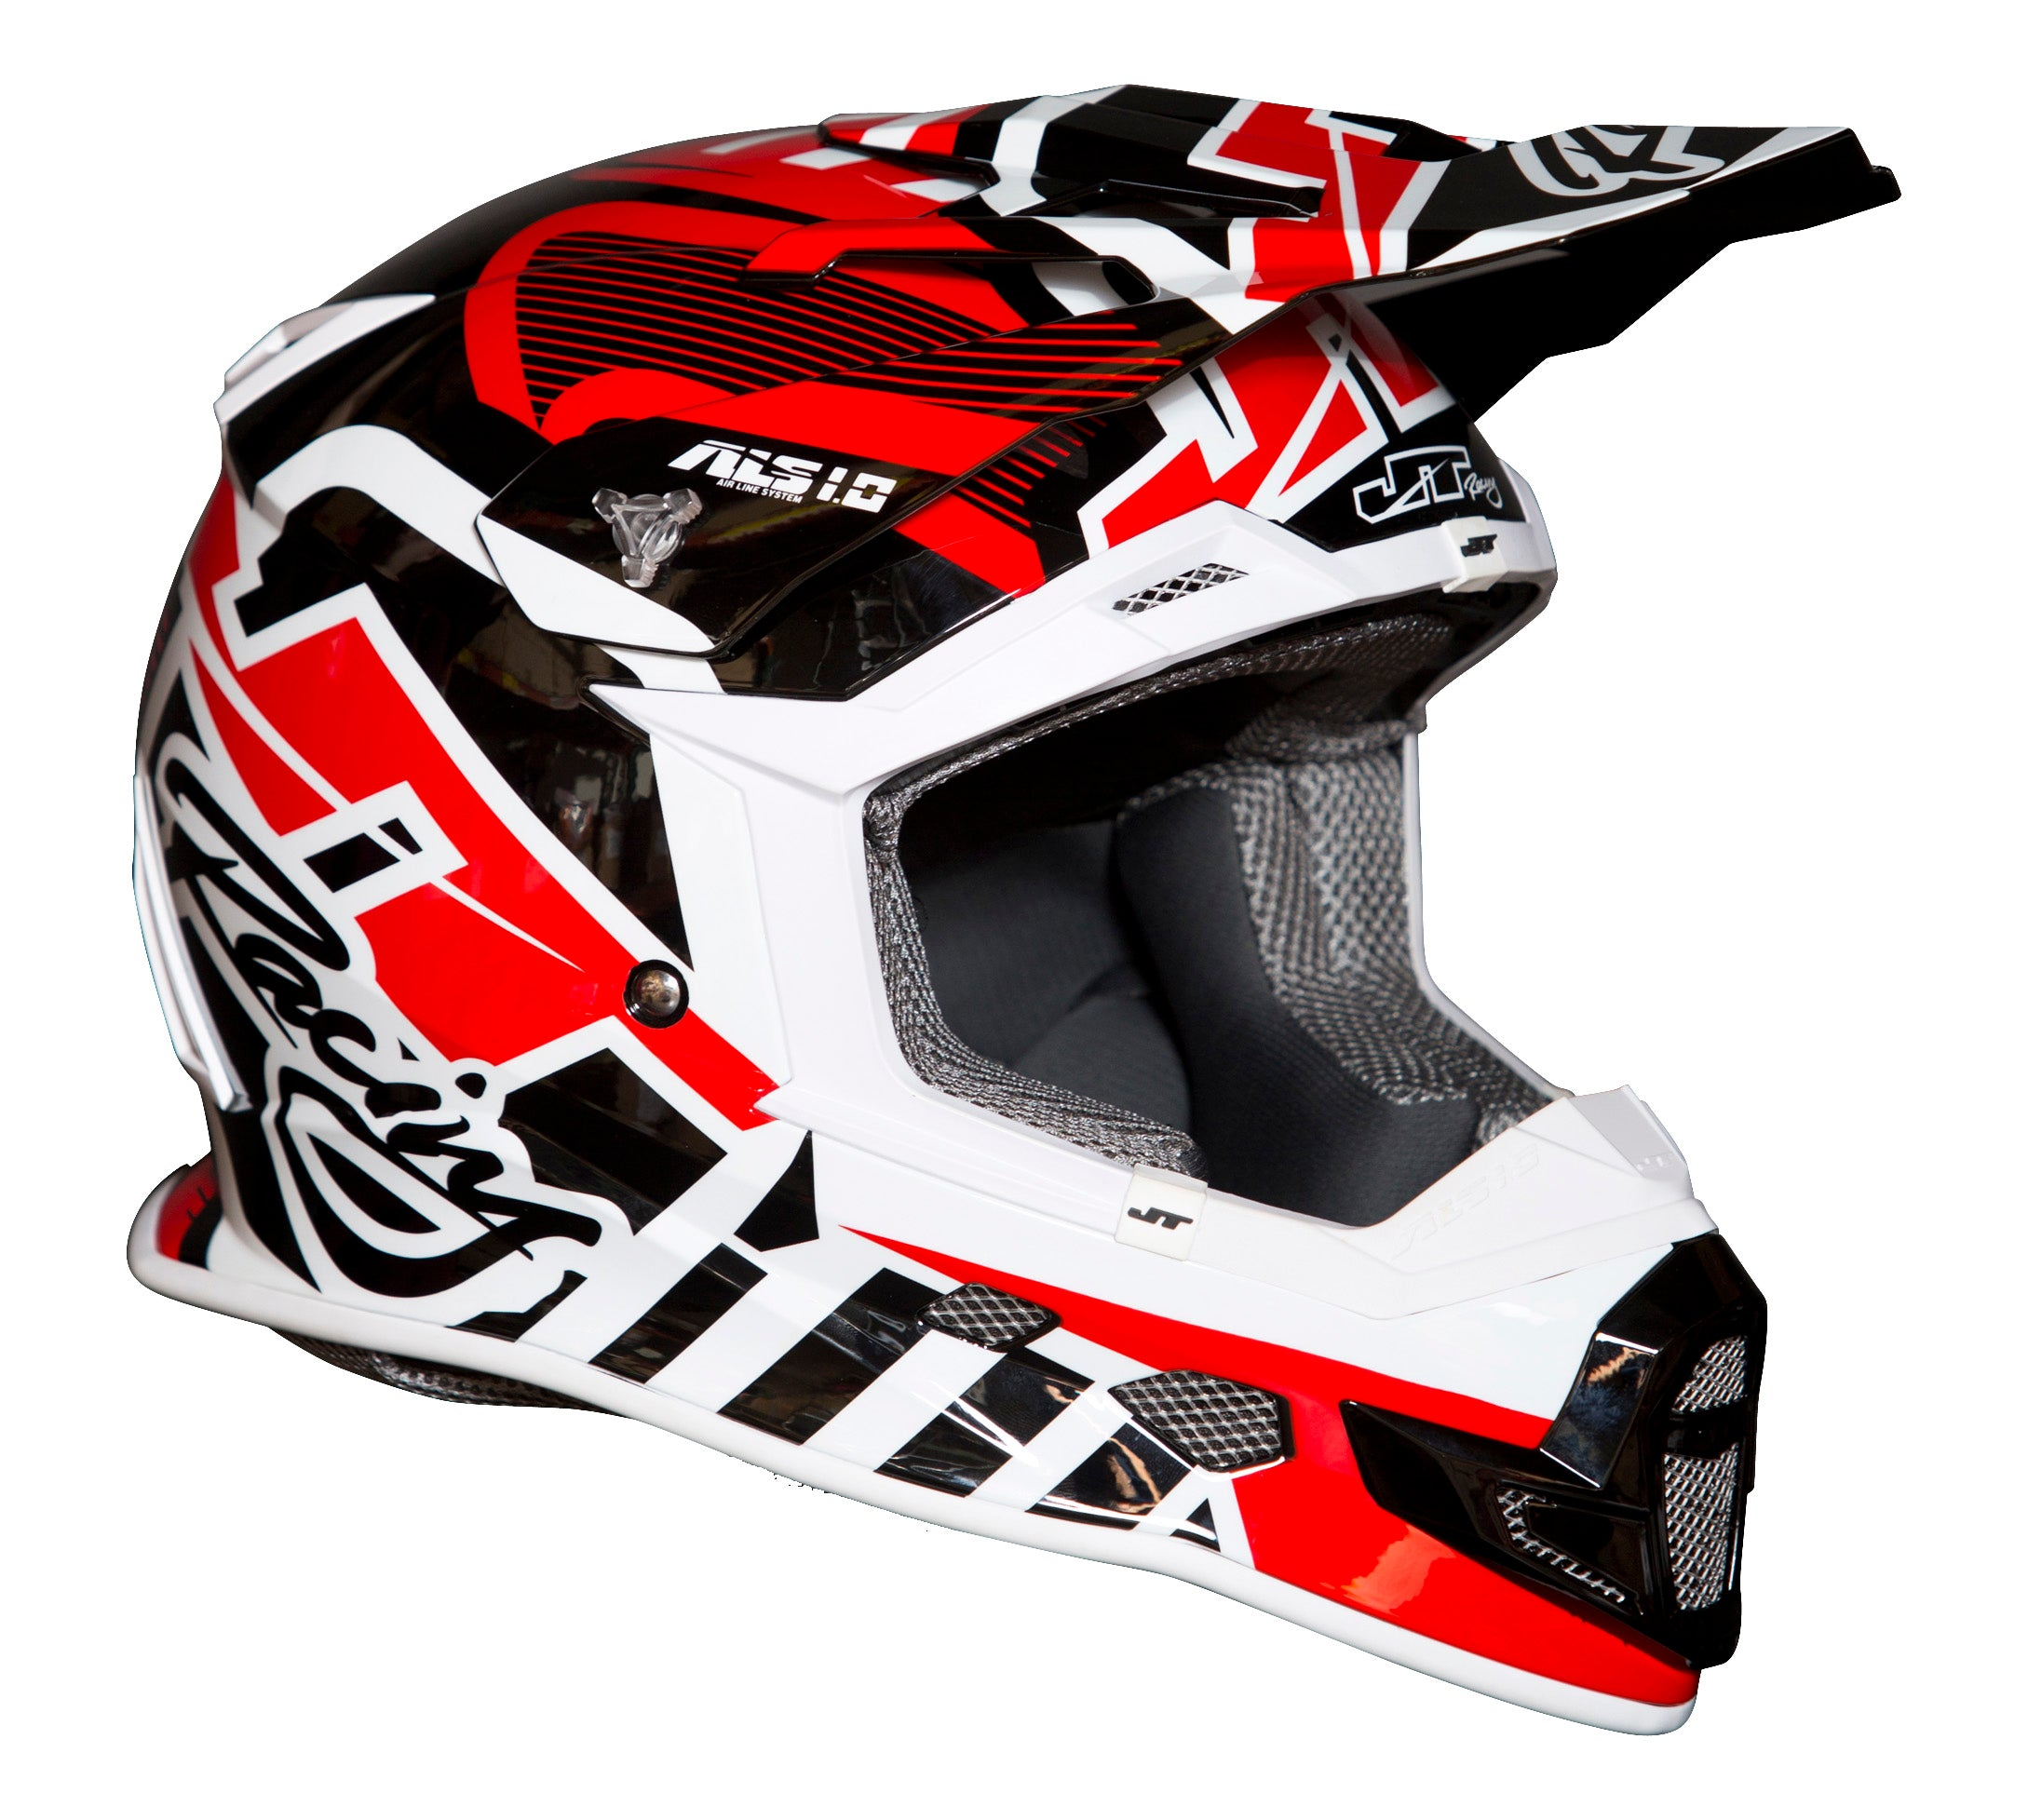 JT RACING USA-2017 ALS1.0 Helmet, Red/Black